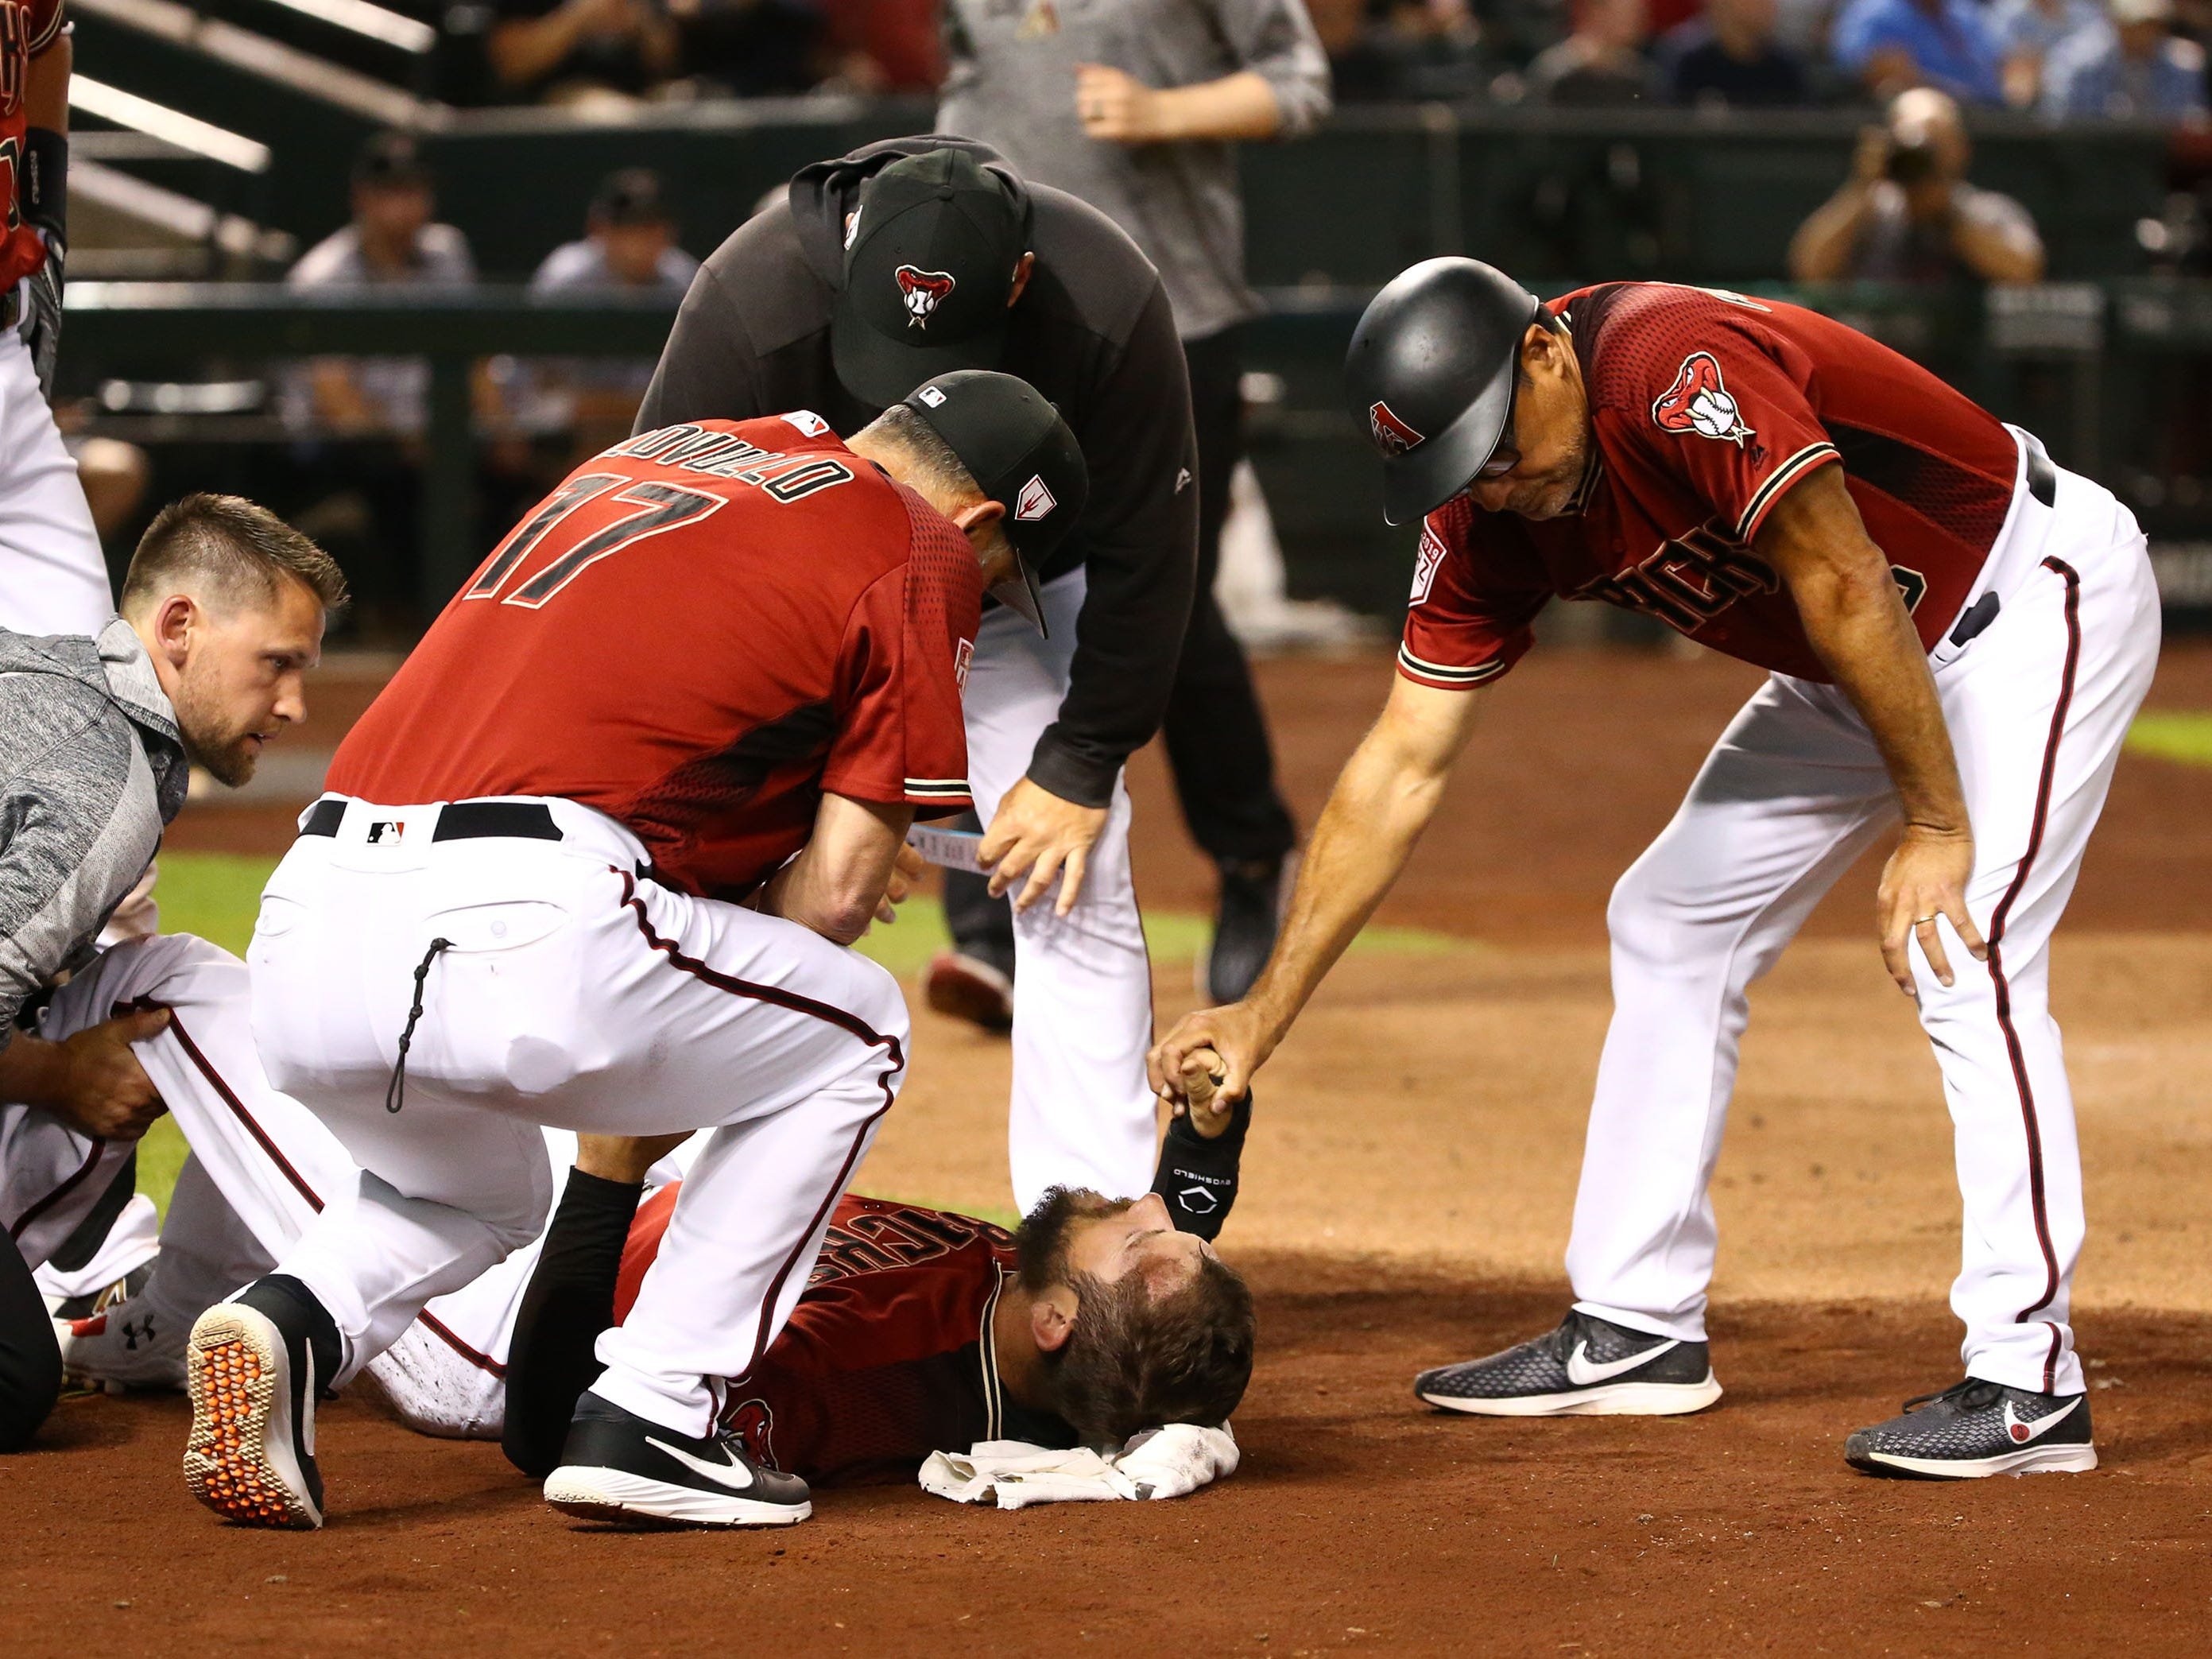 Arizona Diamondbacks coach Tony Perezchica (right) holds the hand of Steven Souza Jr. reacts after suffering an injury to his leg after scoring against the Chicago White Sox in the fourth inning during a spring training game on Mar. 25, 2019 at Chase Field in Phoenix, Ariz. Steven Souza Jr. was carried from the field.